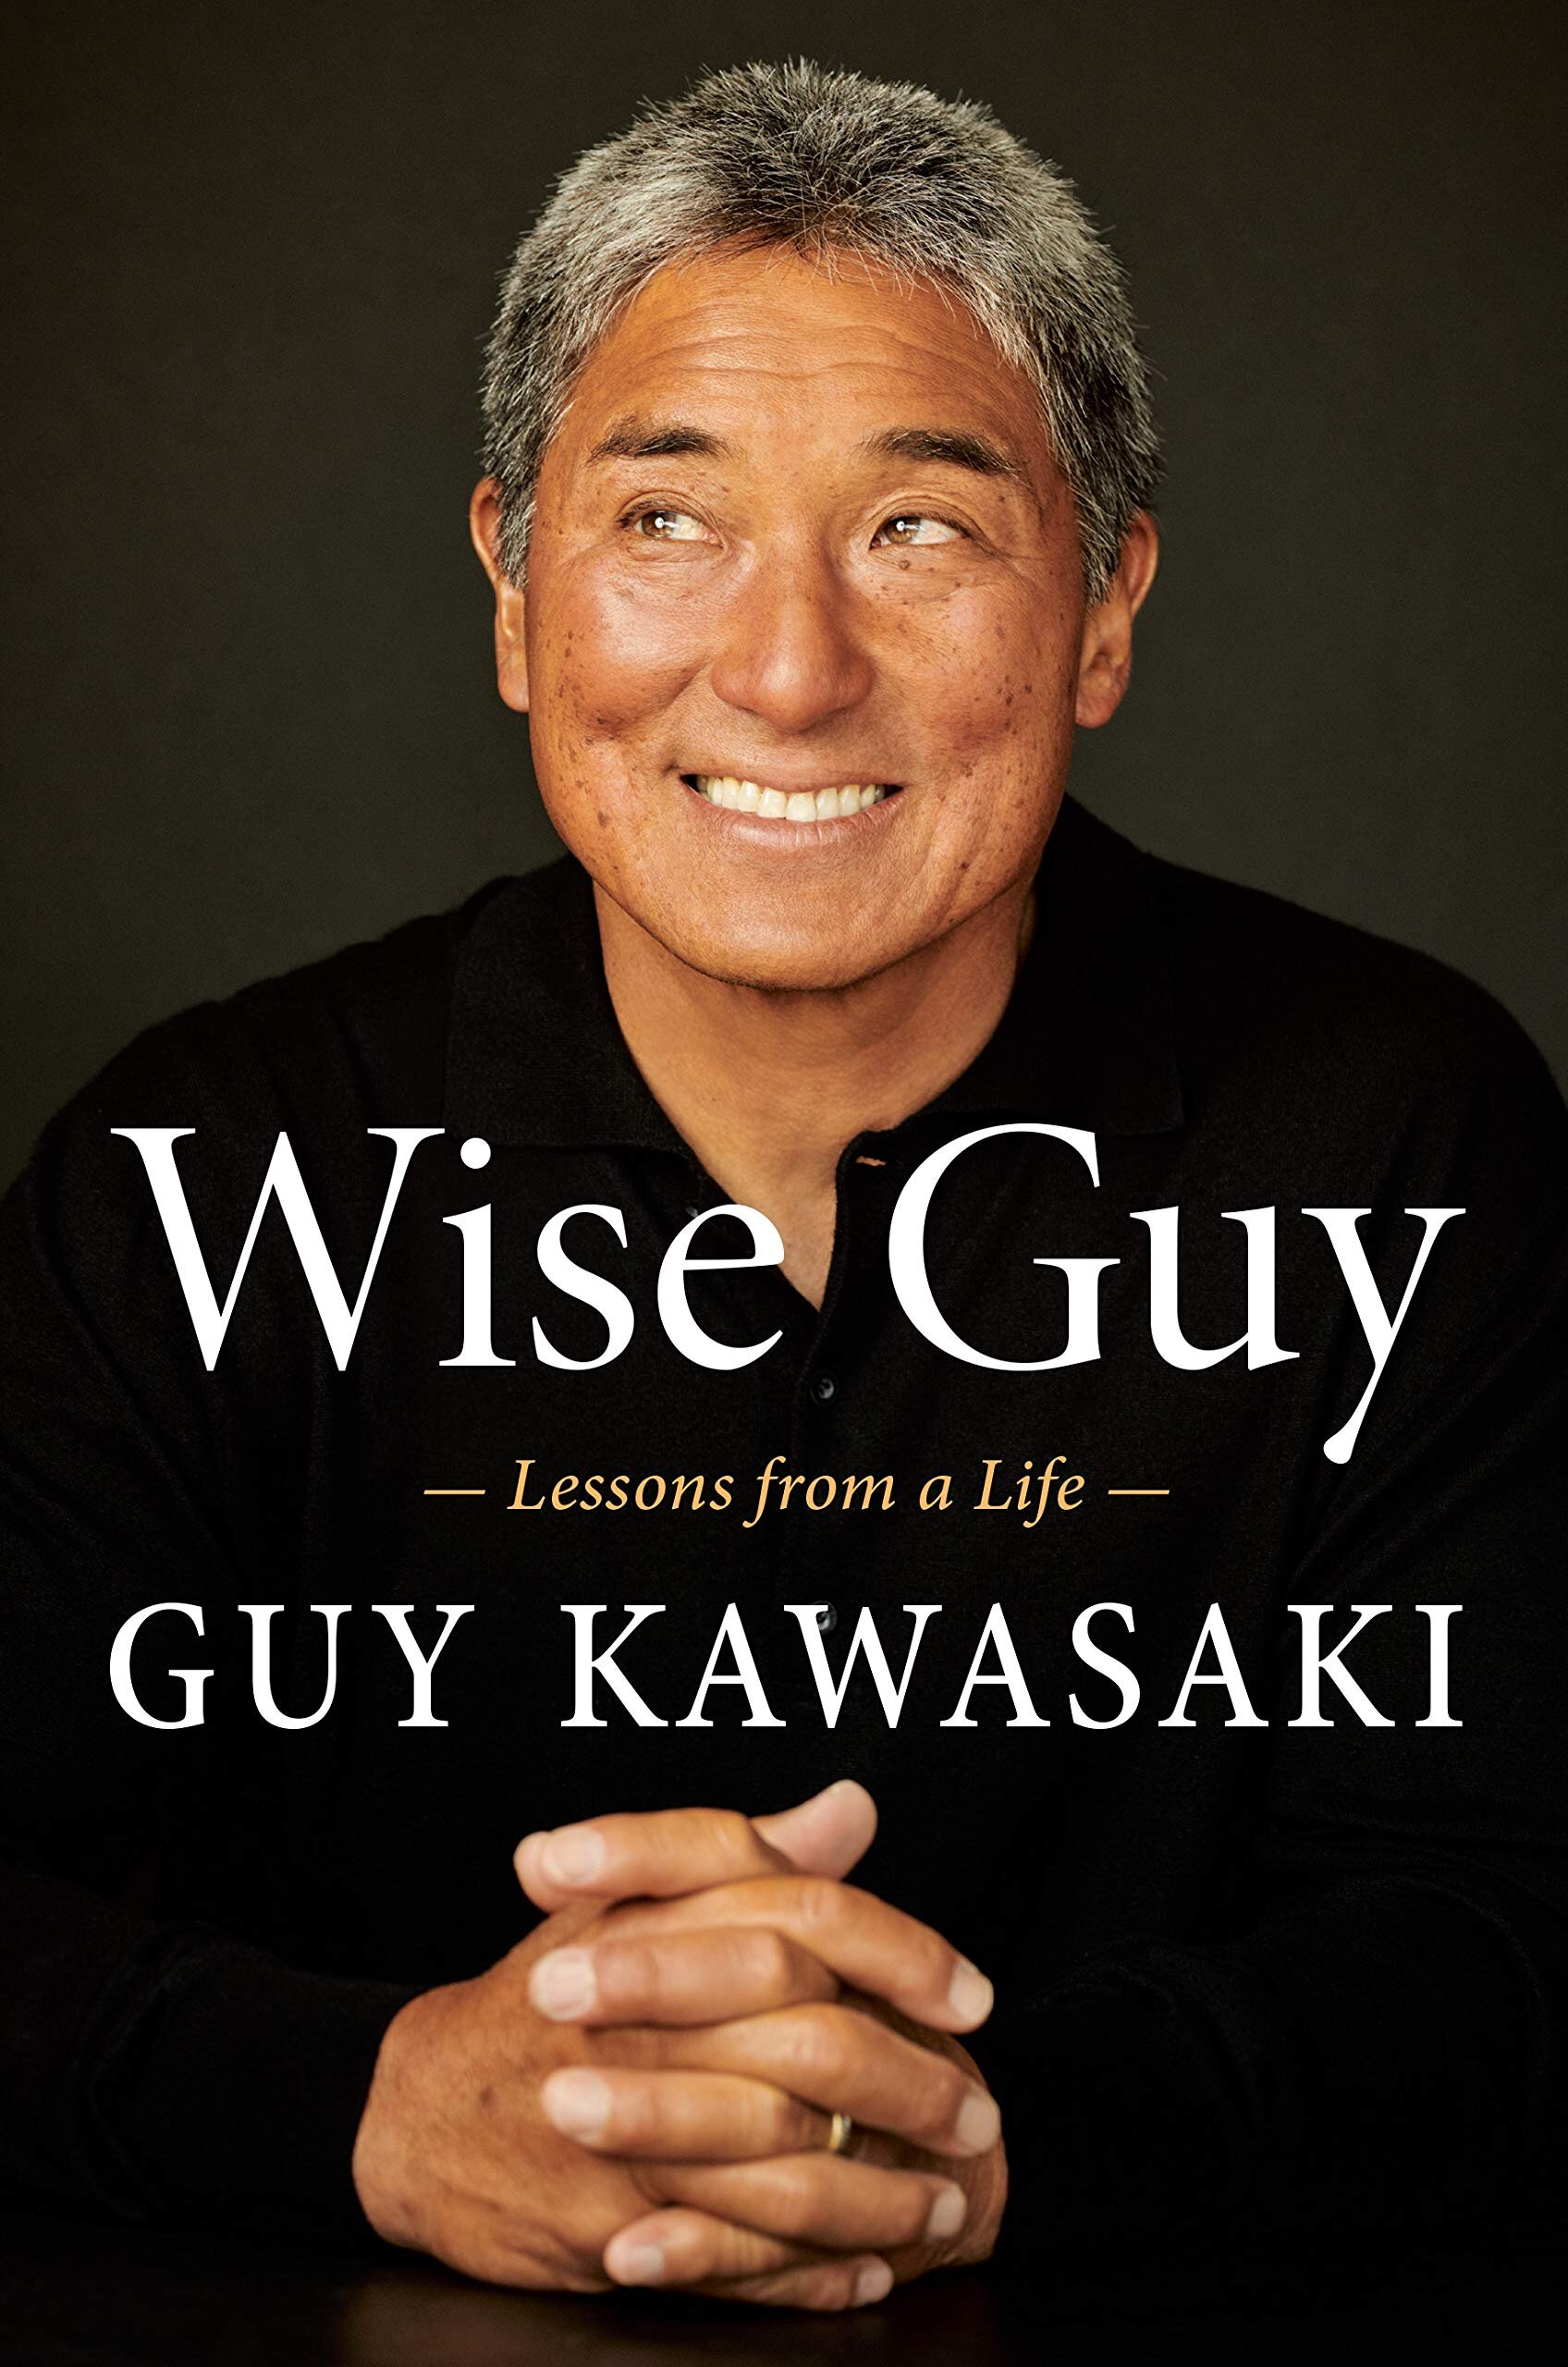 Wise Guy by Guy Kawasaki.jpg